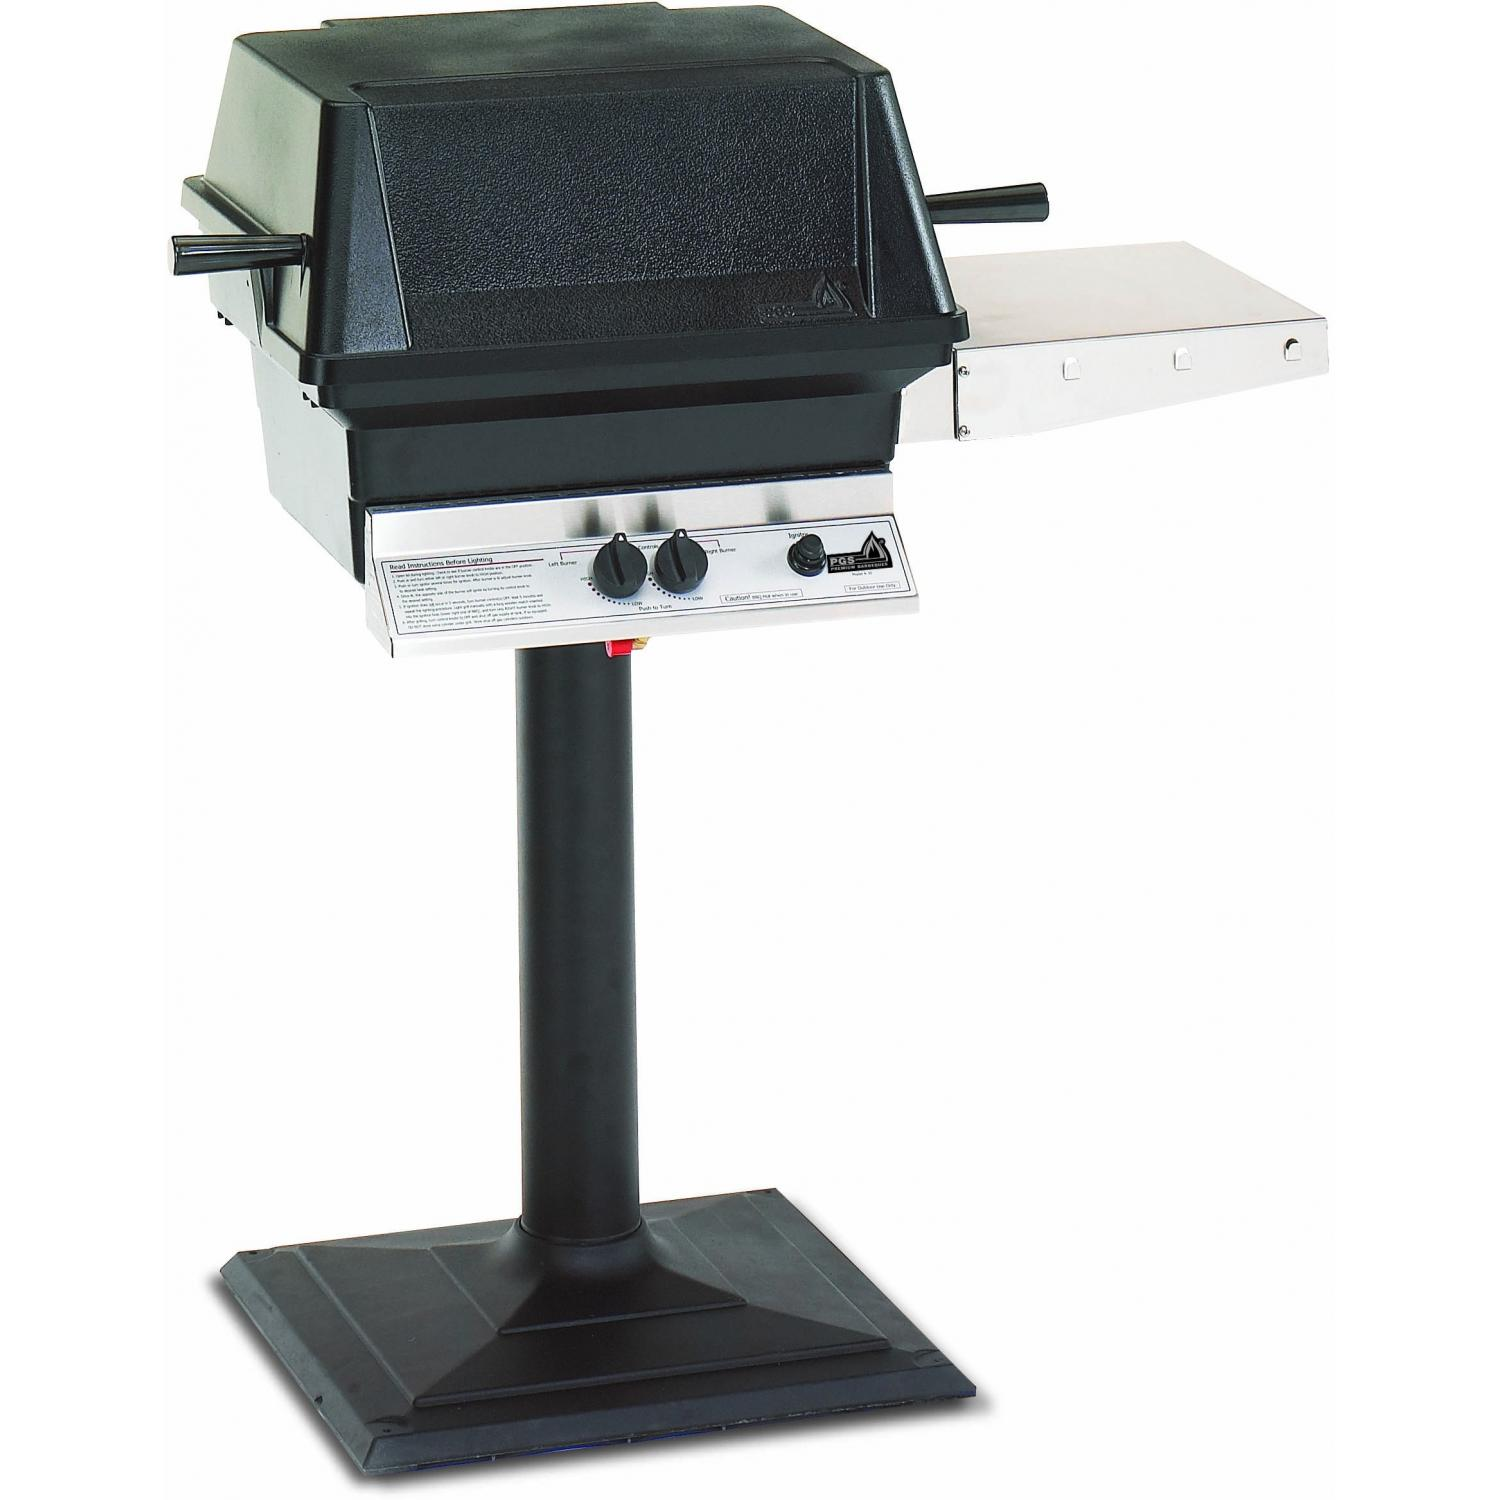 deals napoleon ultra chef up405 natural gas grill with. Black Bedroom Furniture Sets. Home Design Ideas